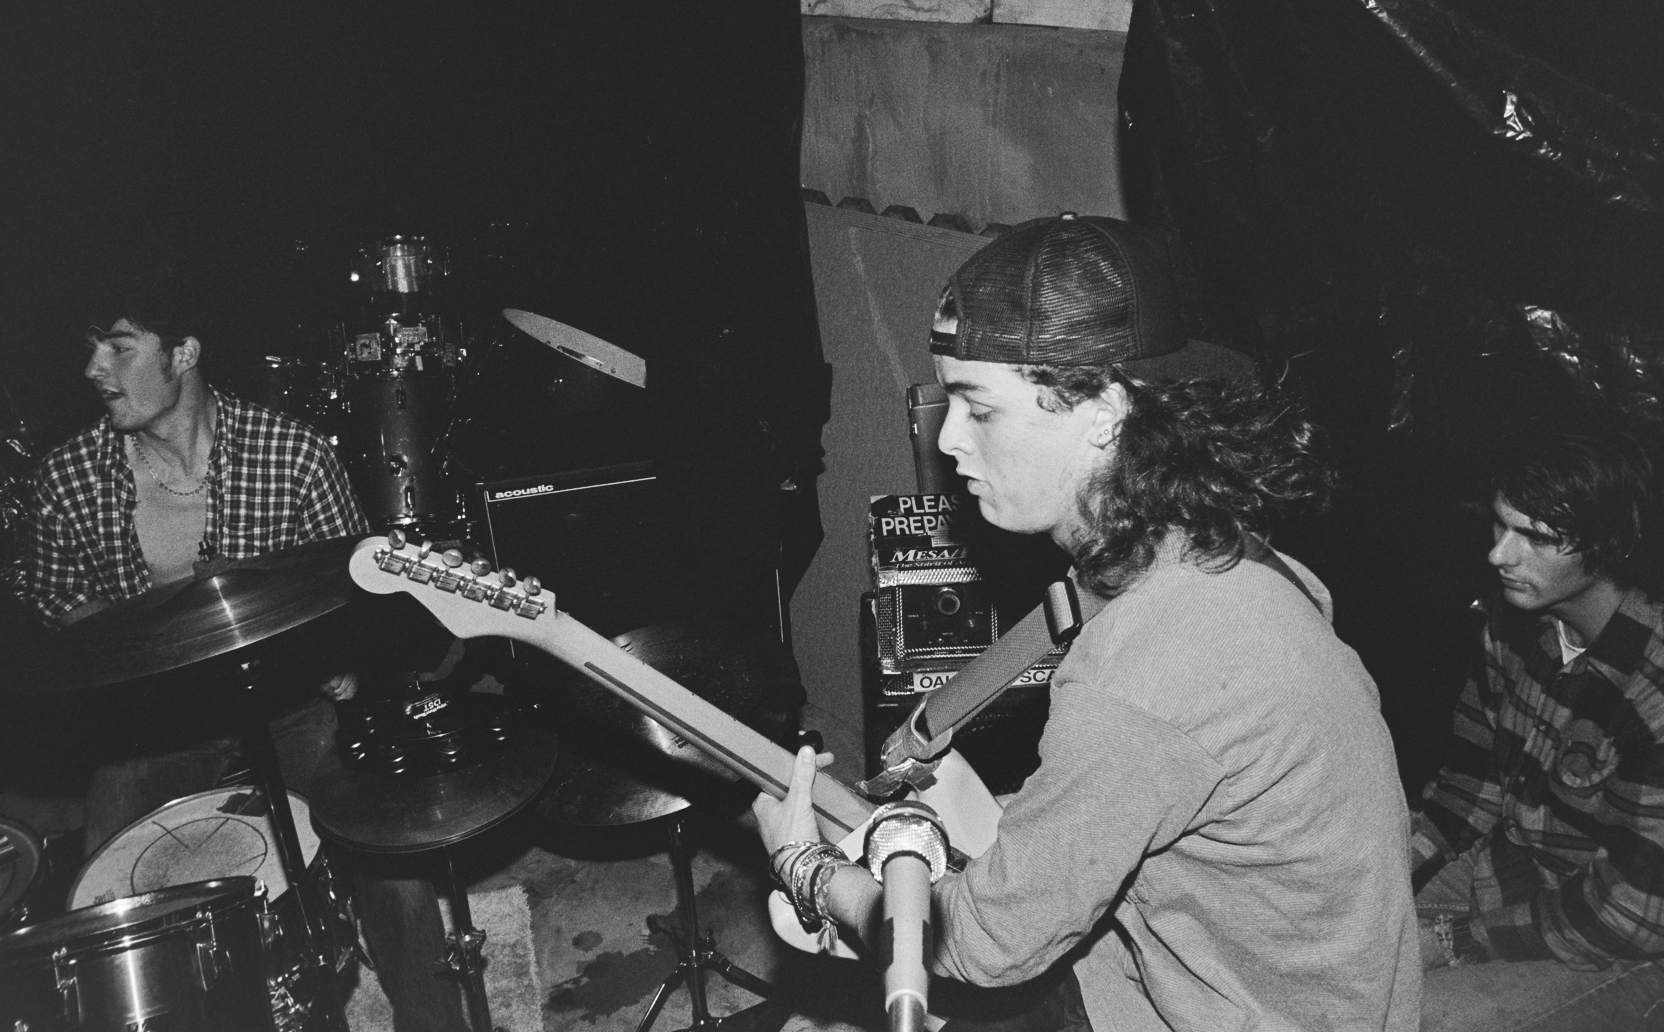 Green Day performs at a friend's backyard party on Nov. 12, 1989 in Pinole, Calif.